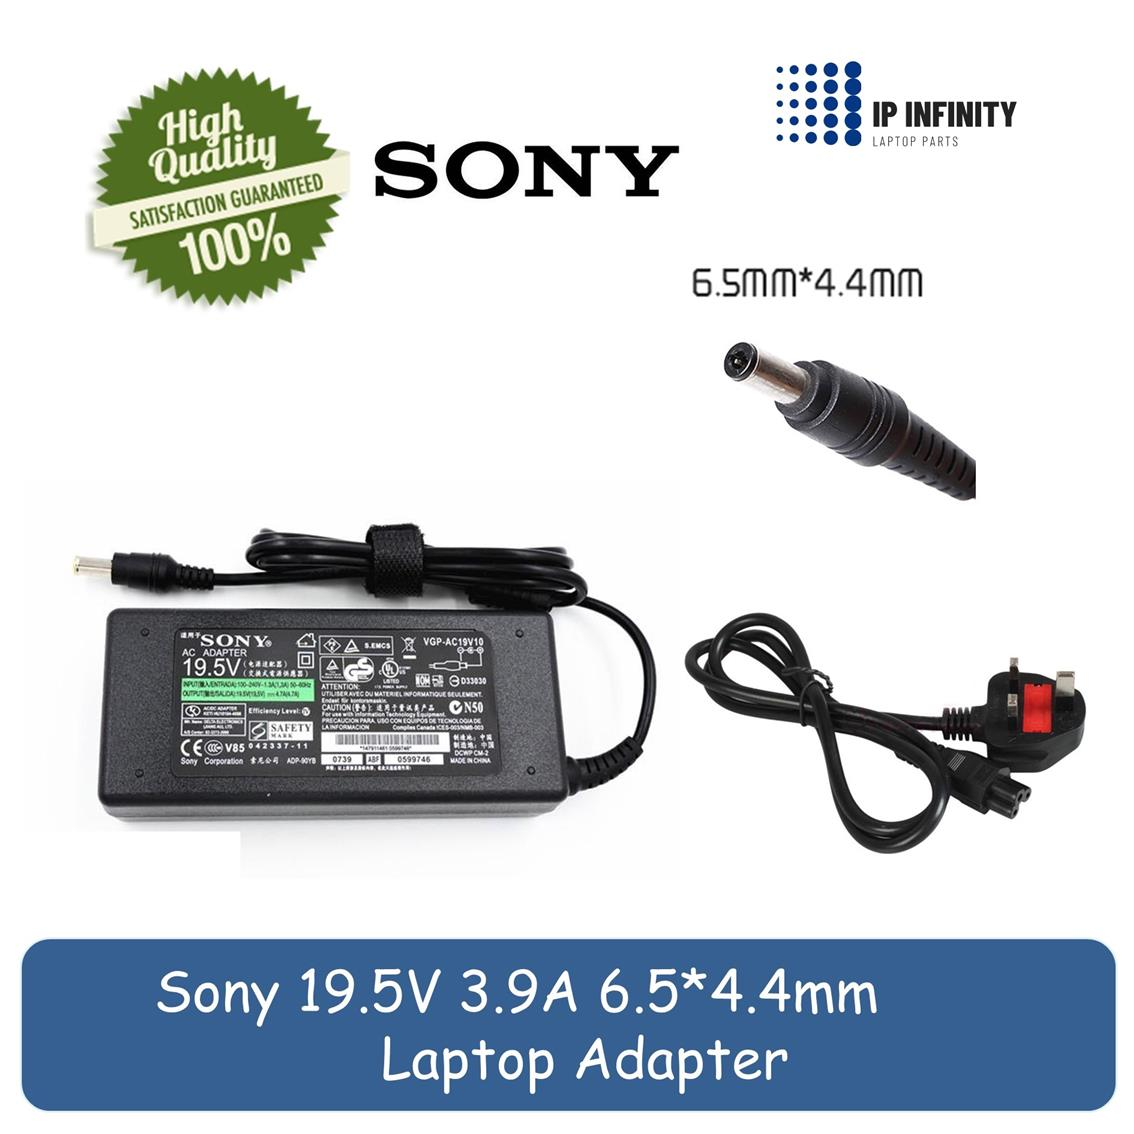 Sony Vaio VGN-A AX BX BZ C CR CS E FE Y E S Laptop Adapter Charger